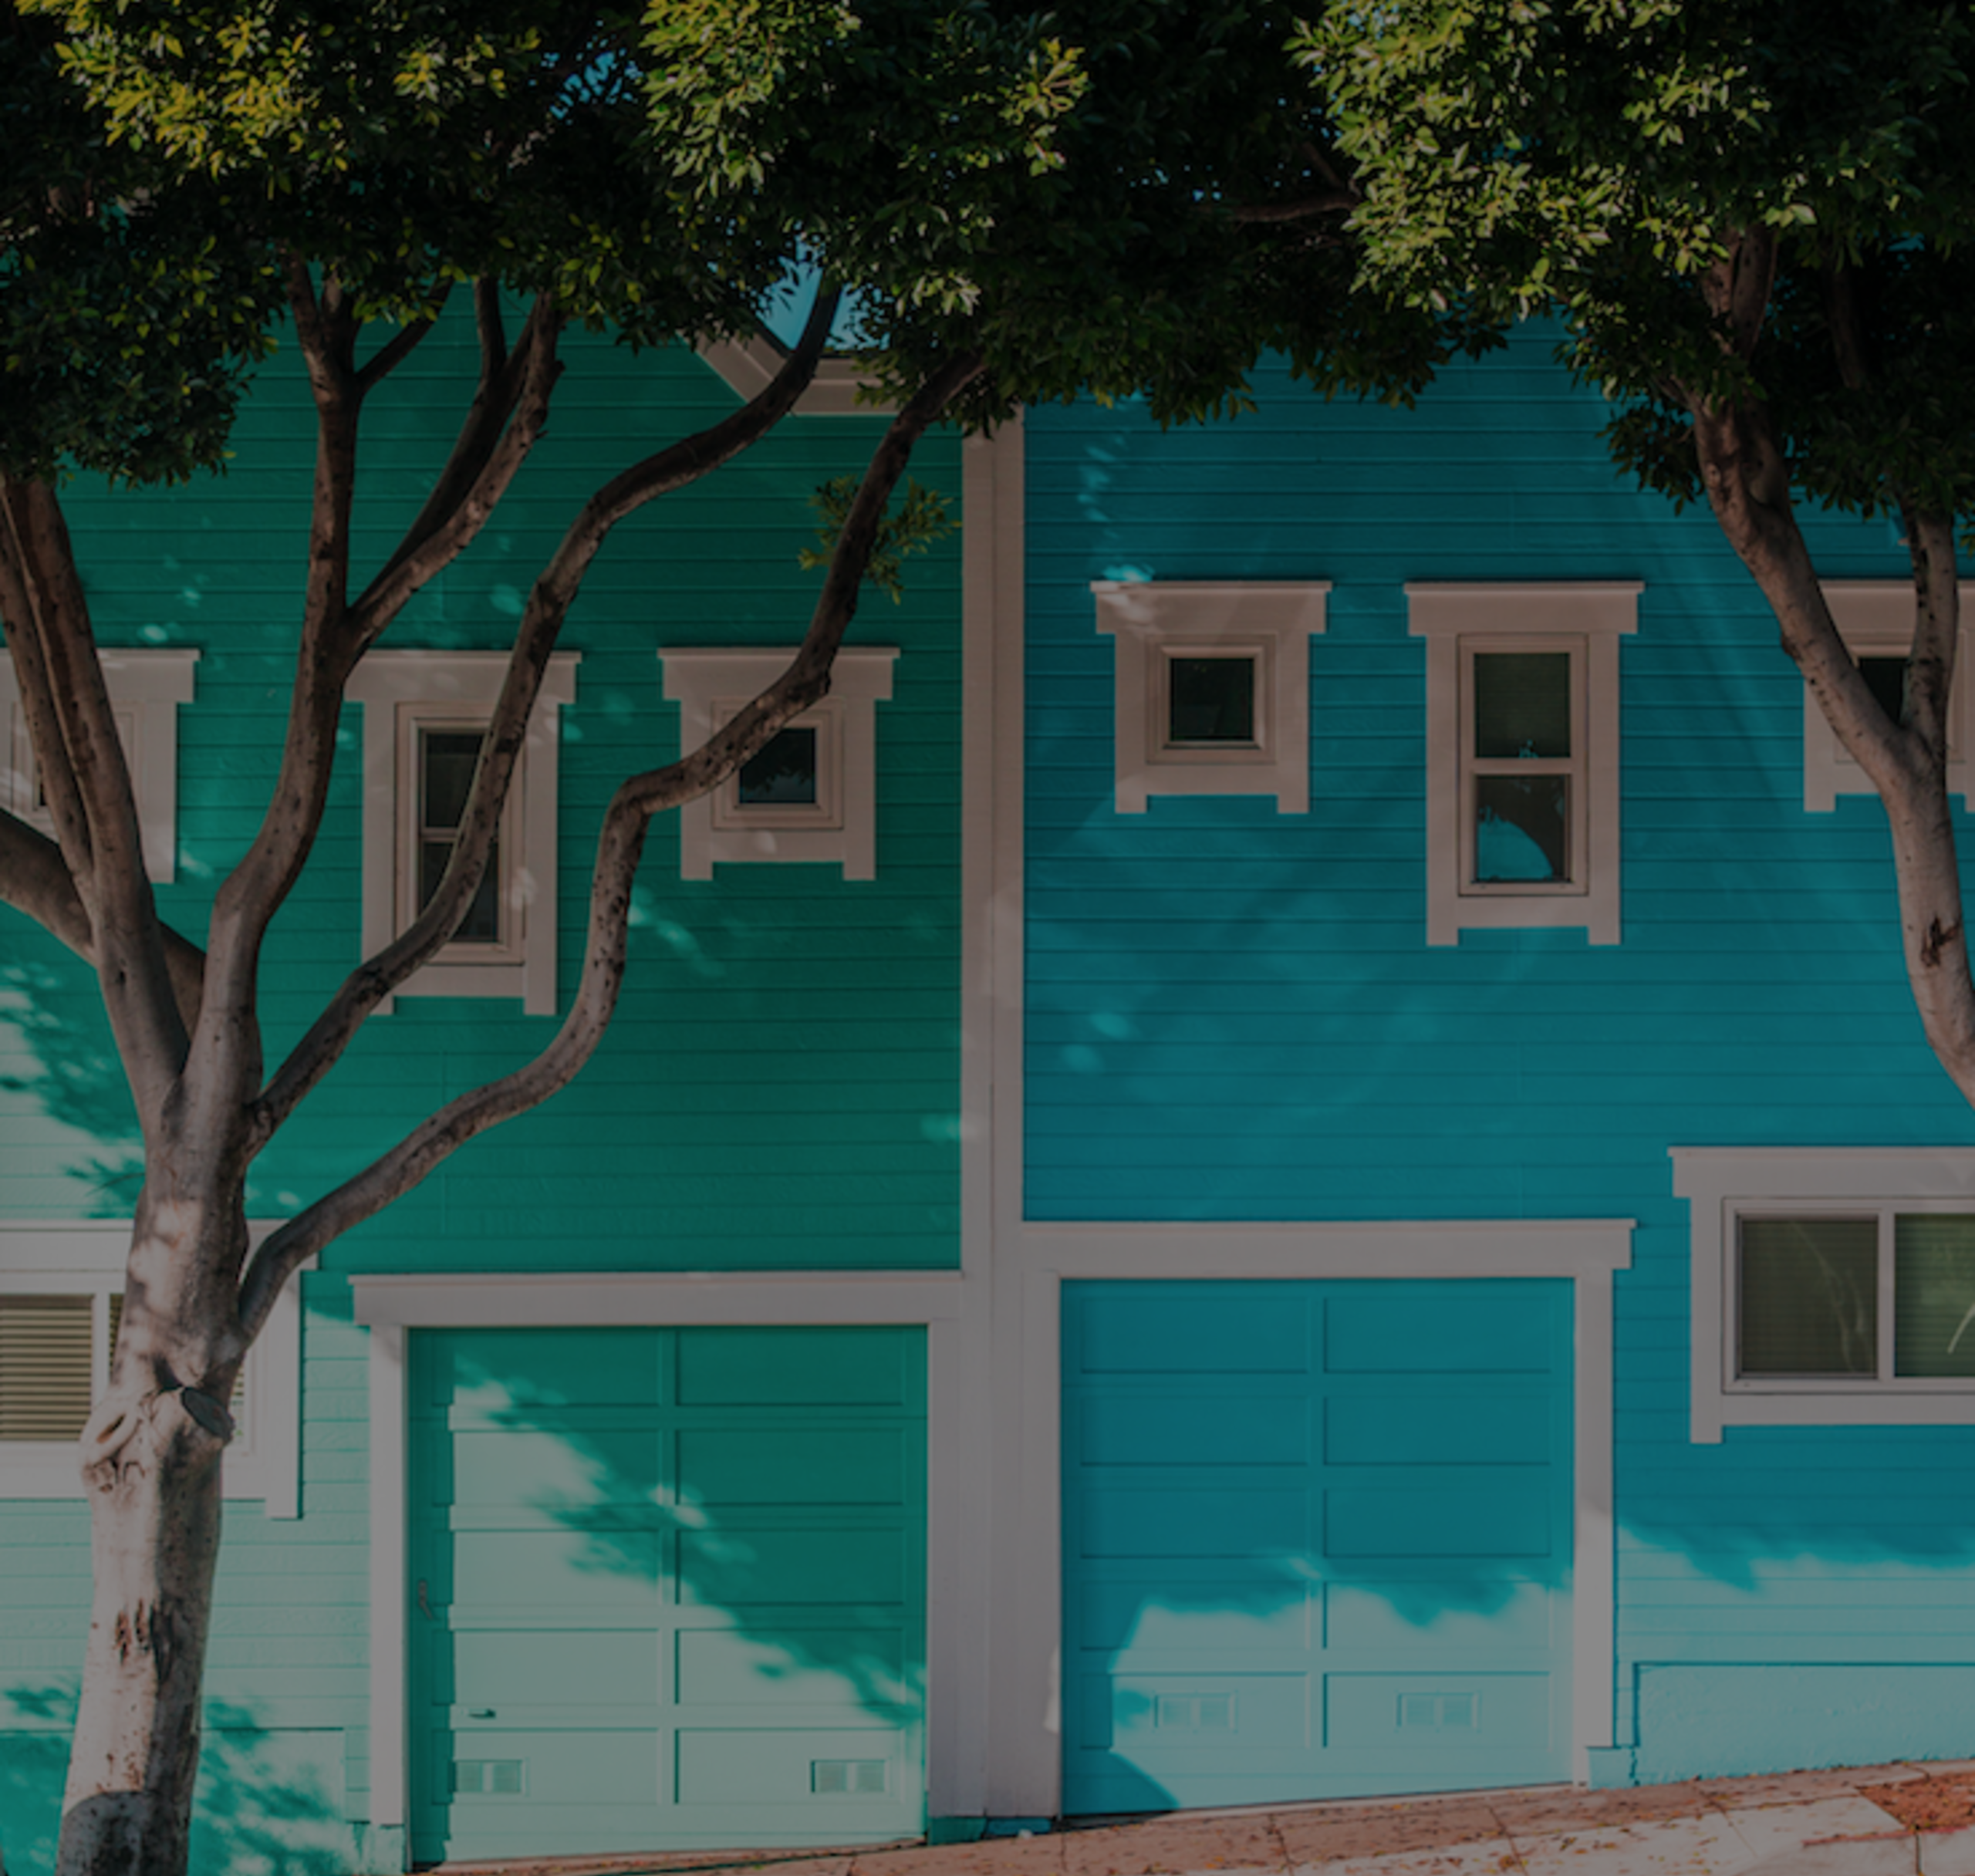 15 Things To Know Before You Buy A House With A Friend